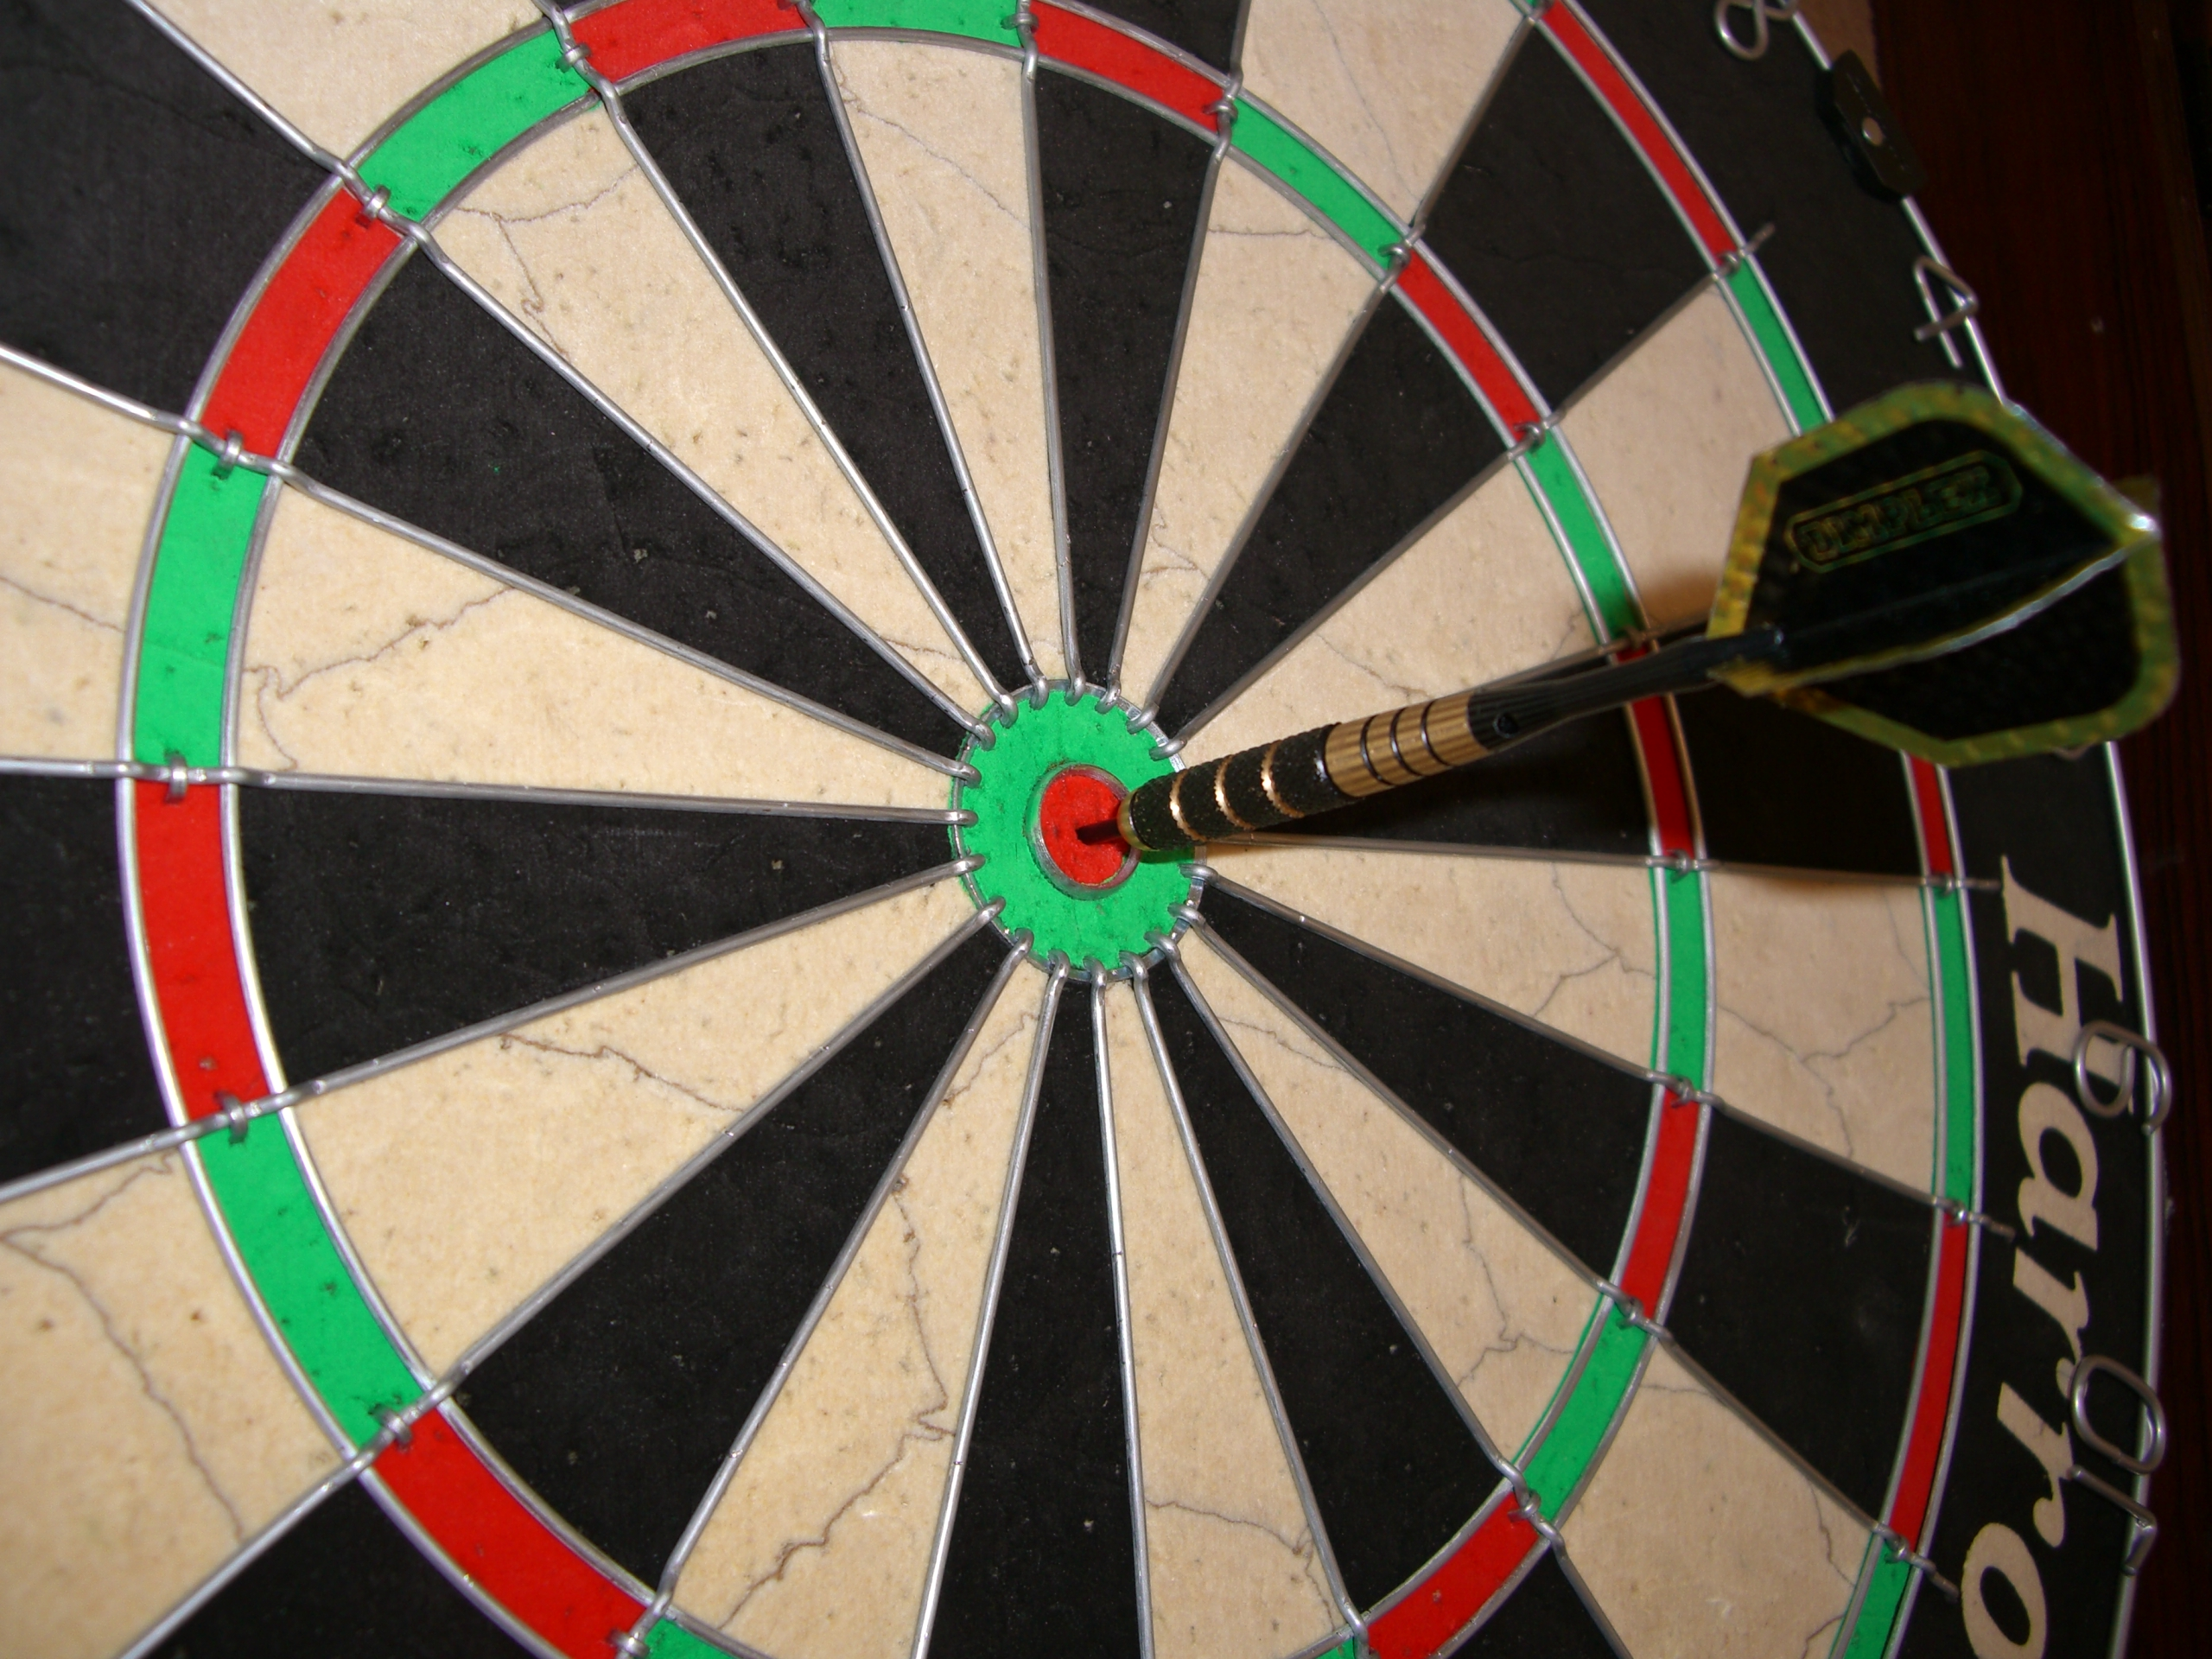 Bulls-eye for your social media posts